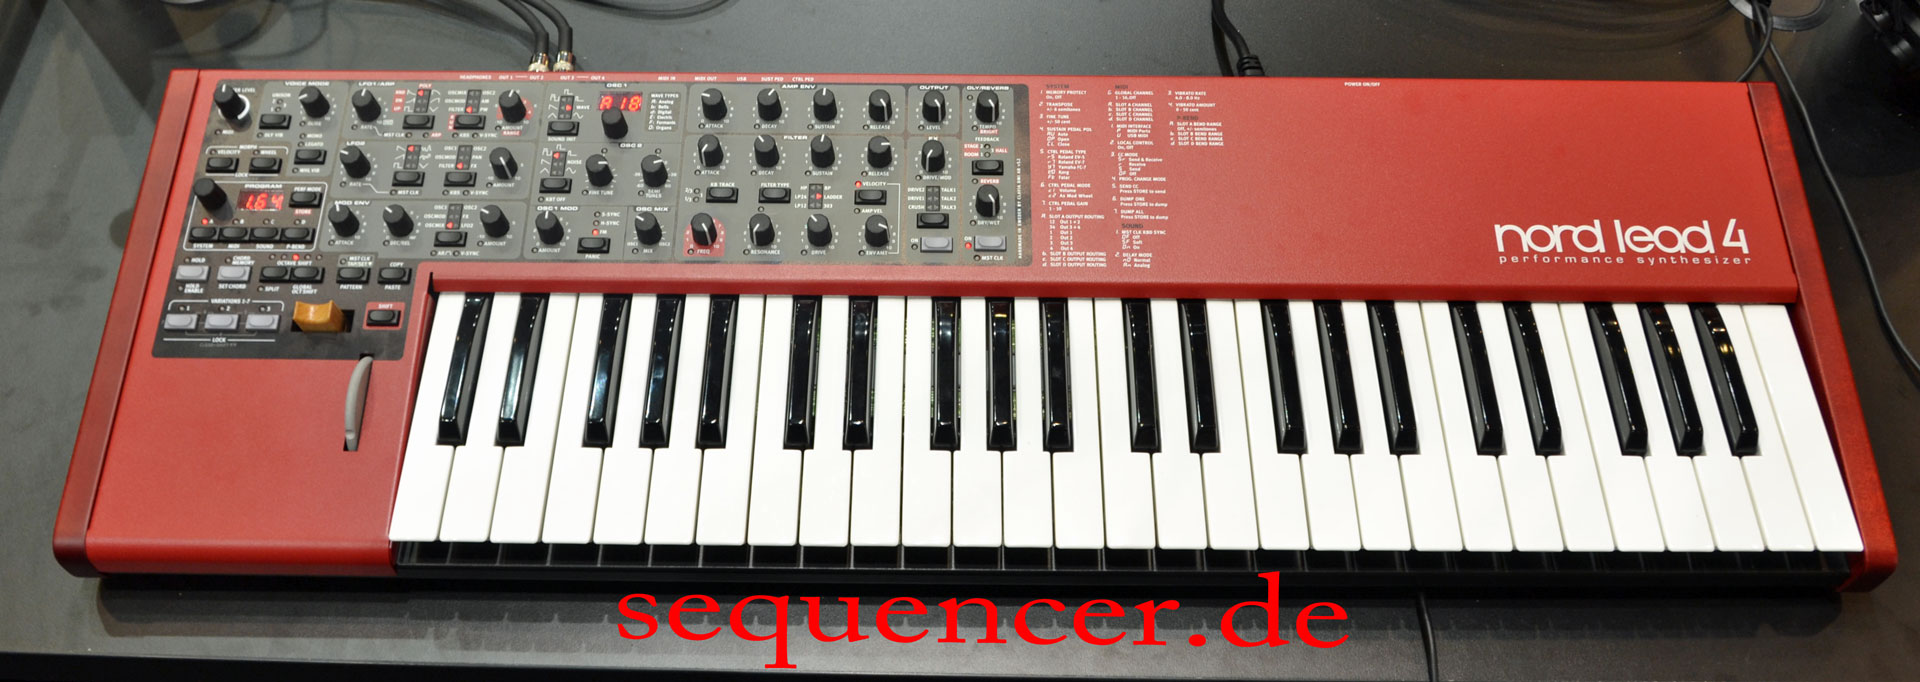 Clavia Nord Lead 4, Nord Rack 4, Nord Lead 4R synthesizer